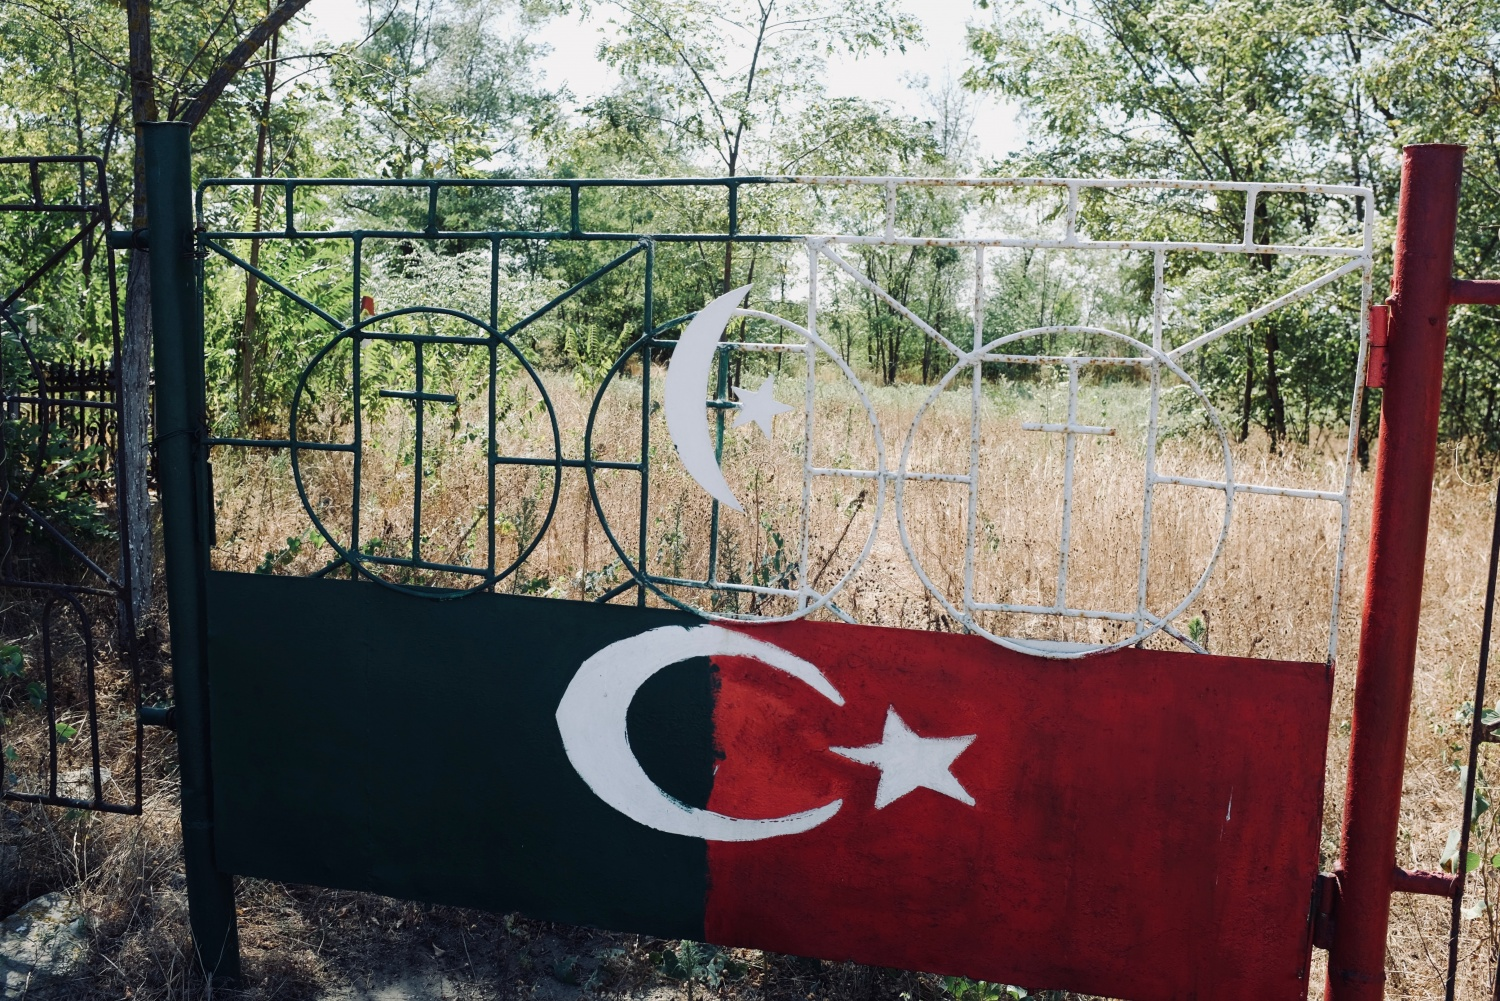 The Ottoman section of Sulina, Romania's diverse cemetery, closed.